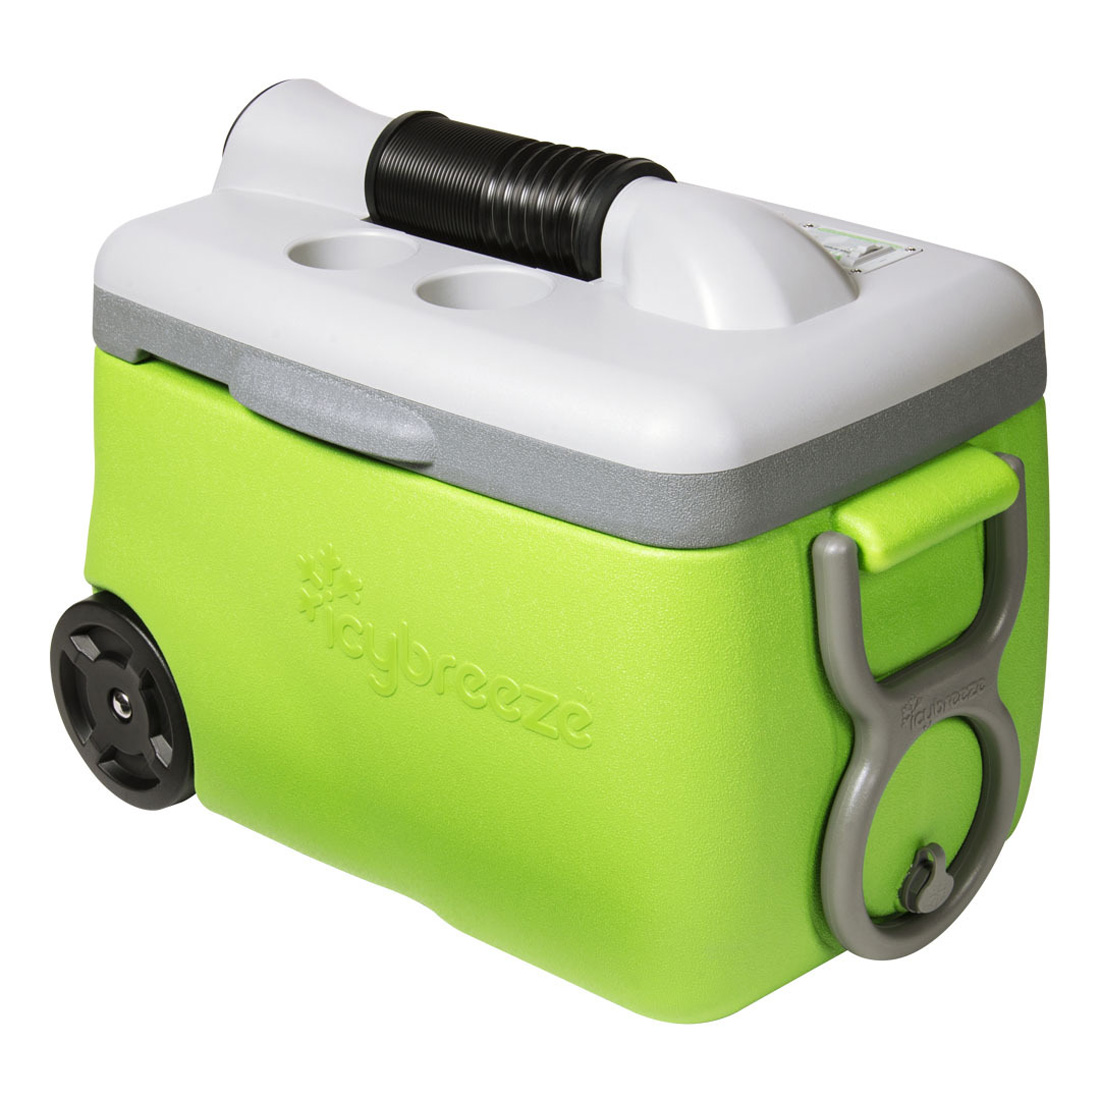 IcyBreeze Portable Air Conditioner / Ice Cooler The Green Head #8DB11A